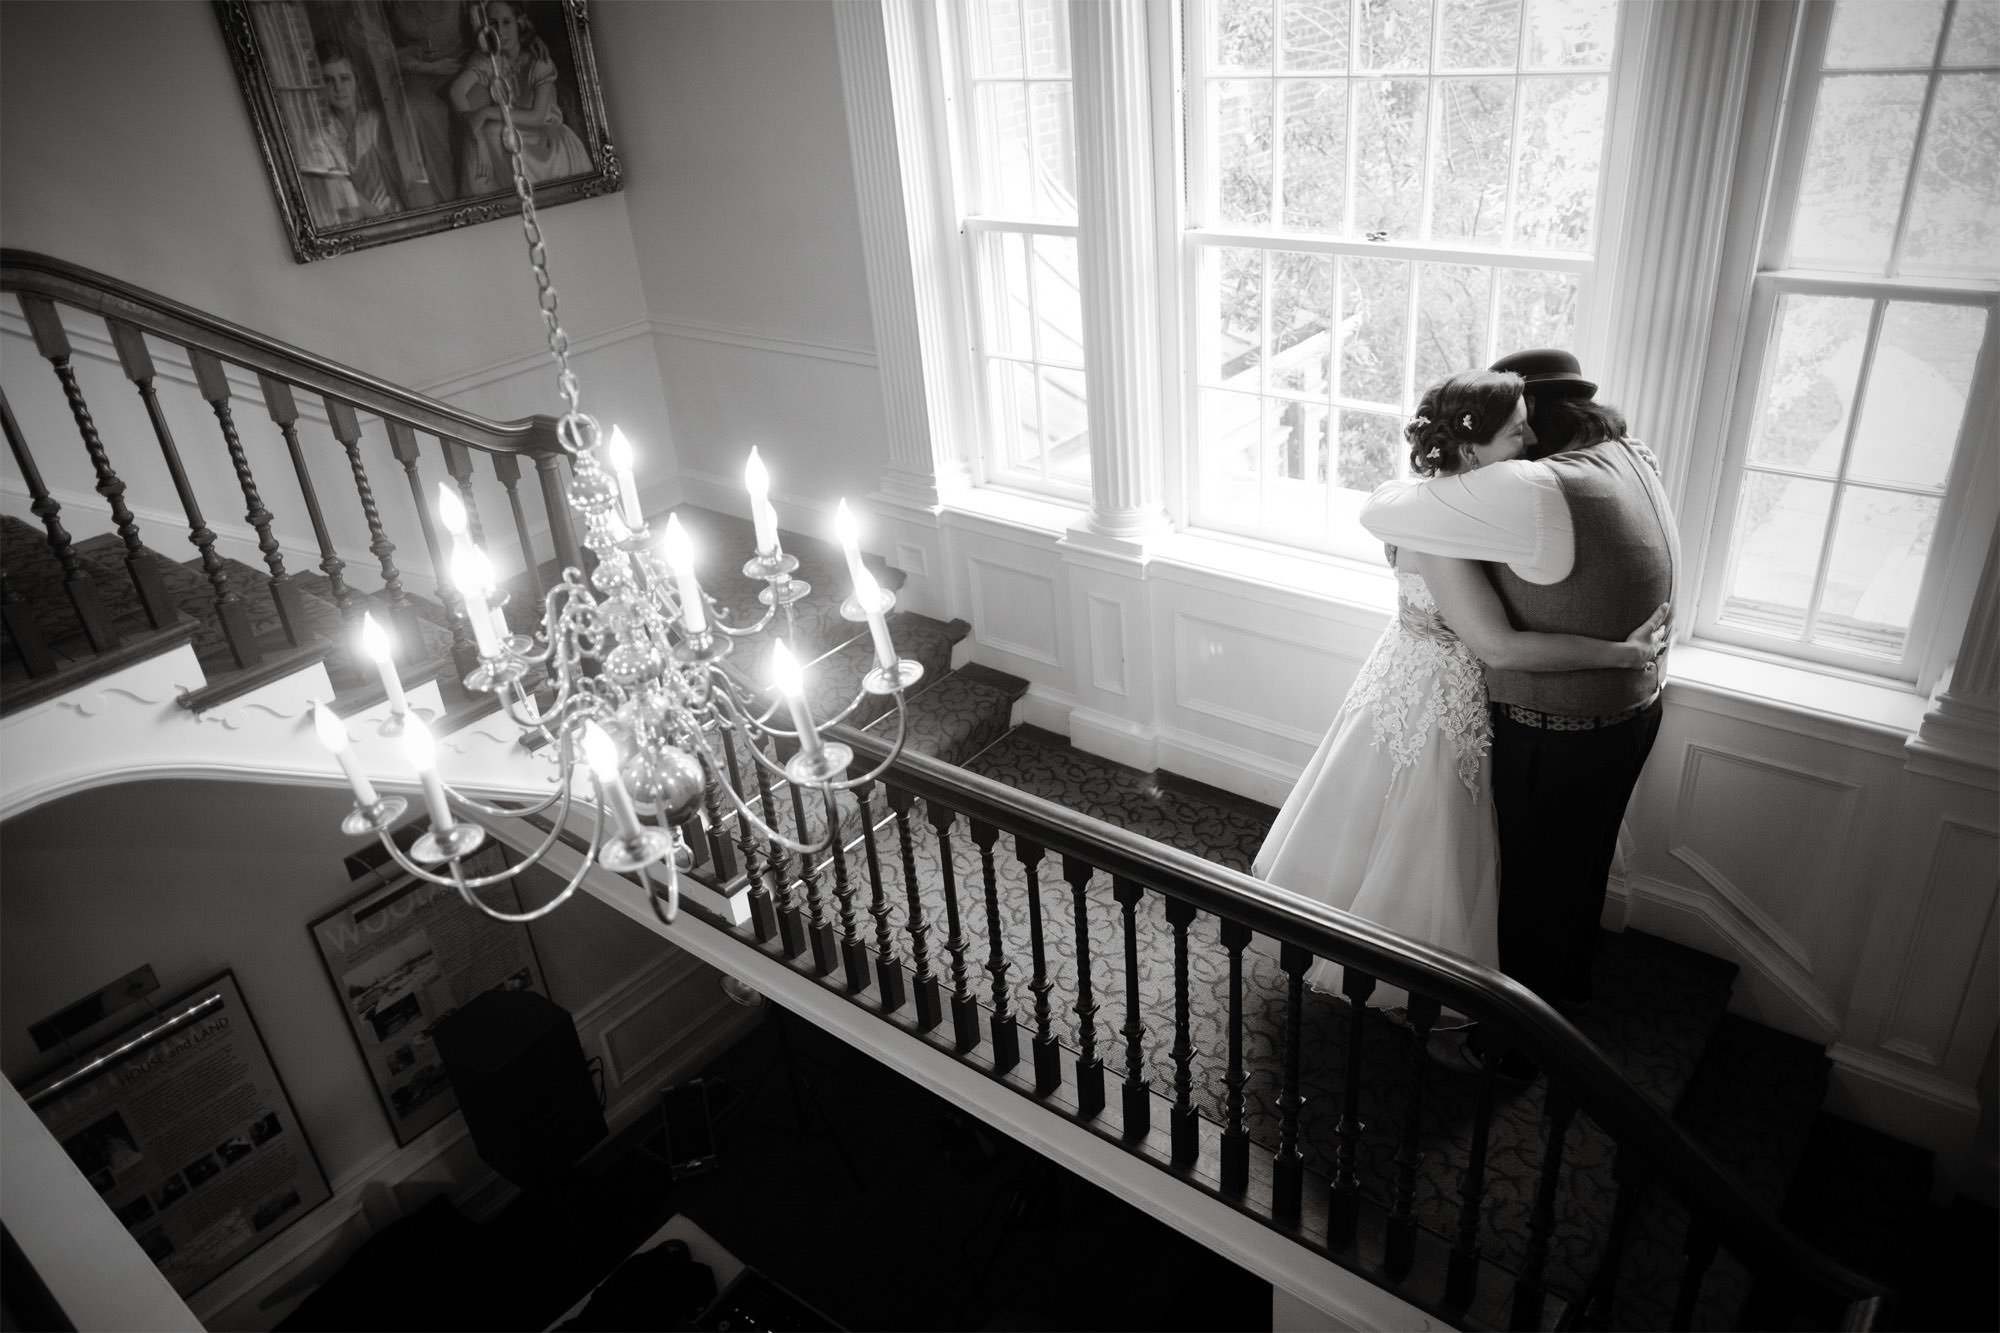 The bride and groom hug on the wedding day at Woodend Sanctuary and Mansion.